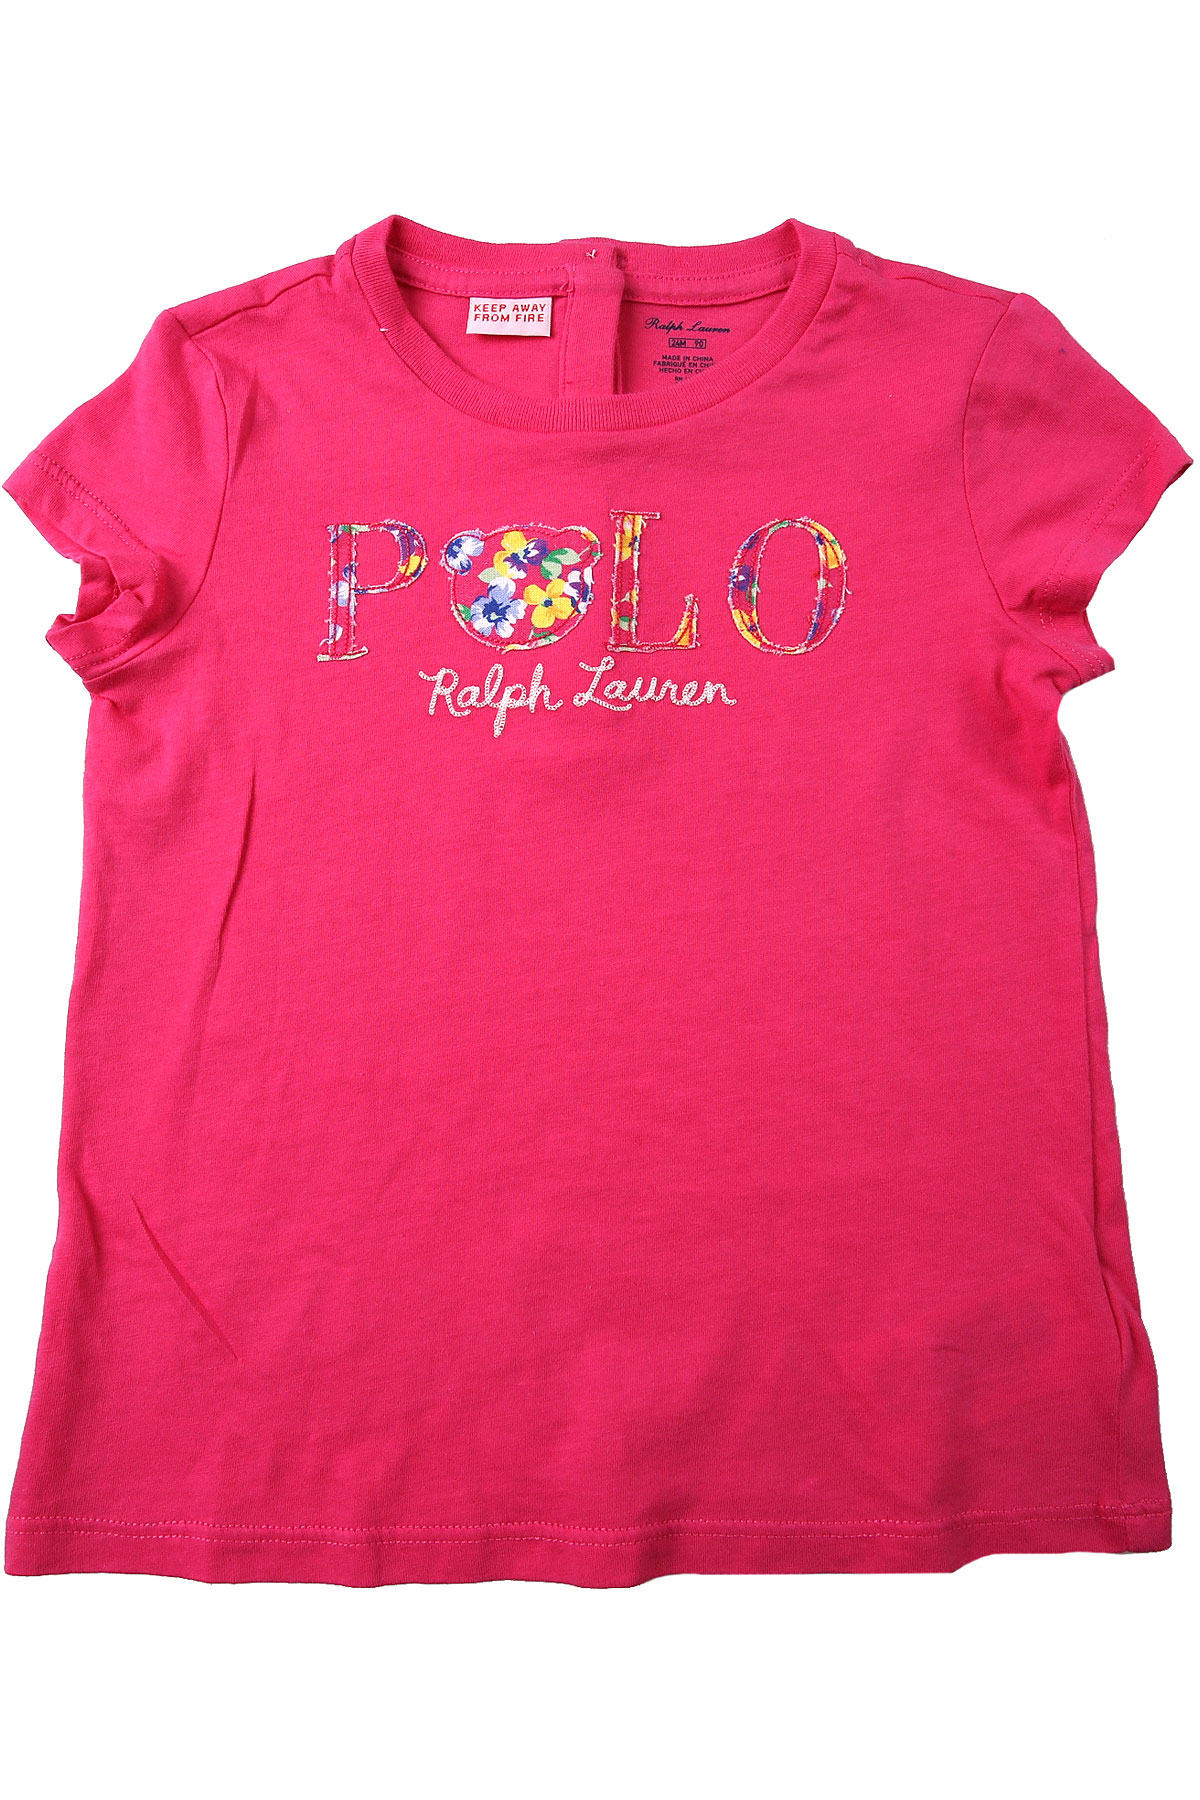 Ralph Lauren Baby T-Shirt for Girls On Sale in Outlet, Fuchsia, Cotton, 2019, 12M 2Y